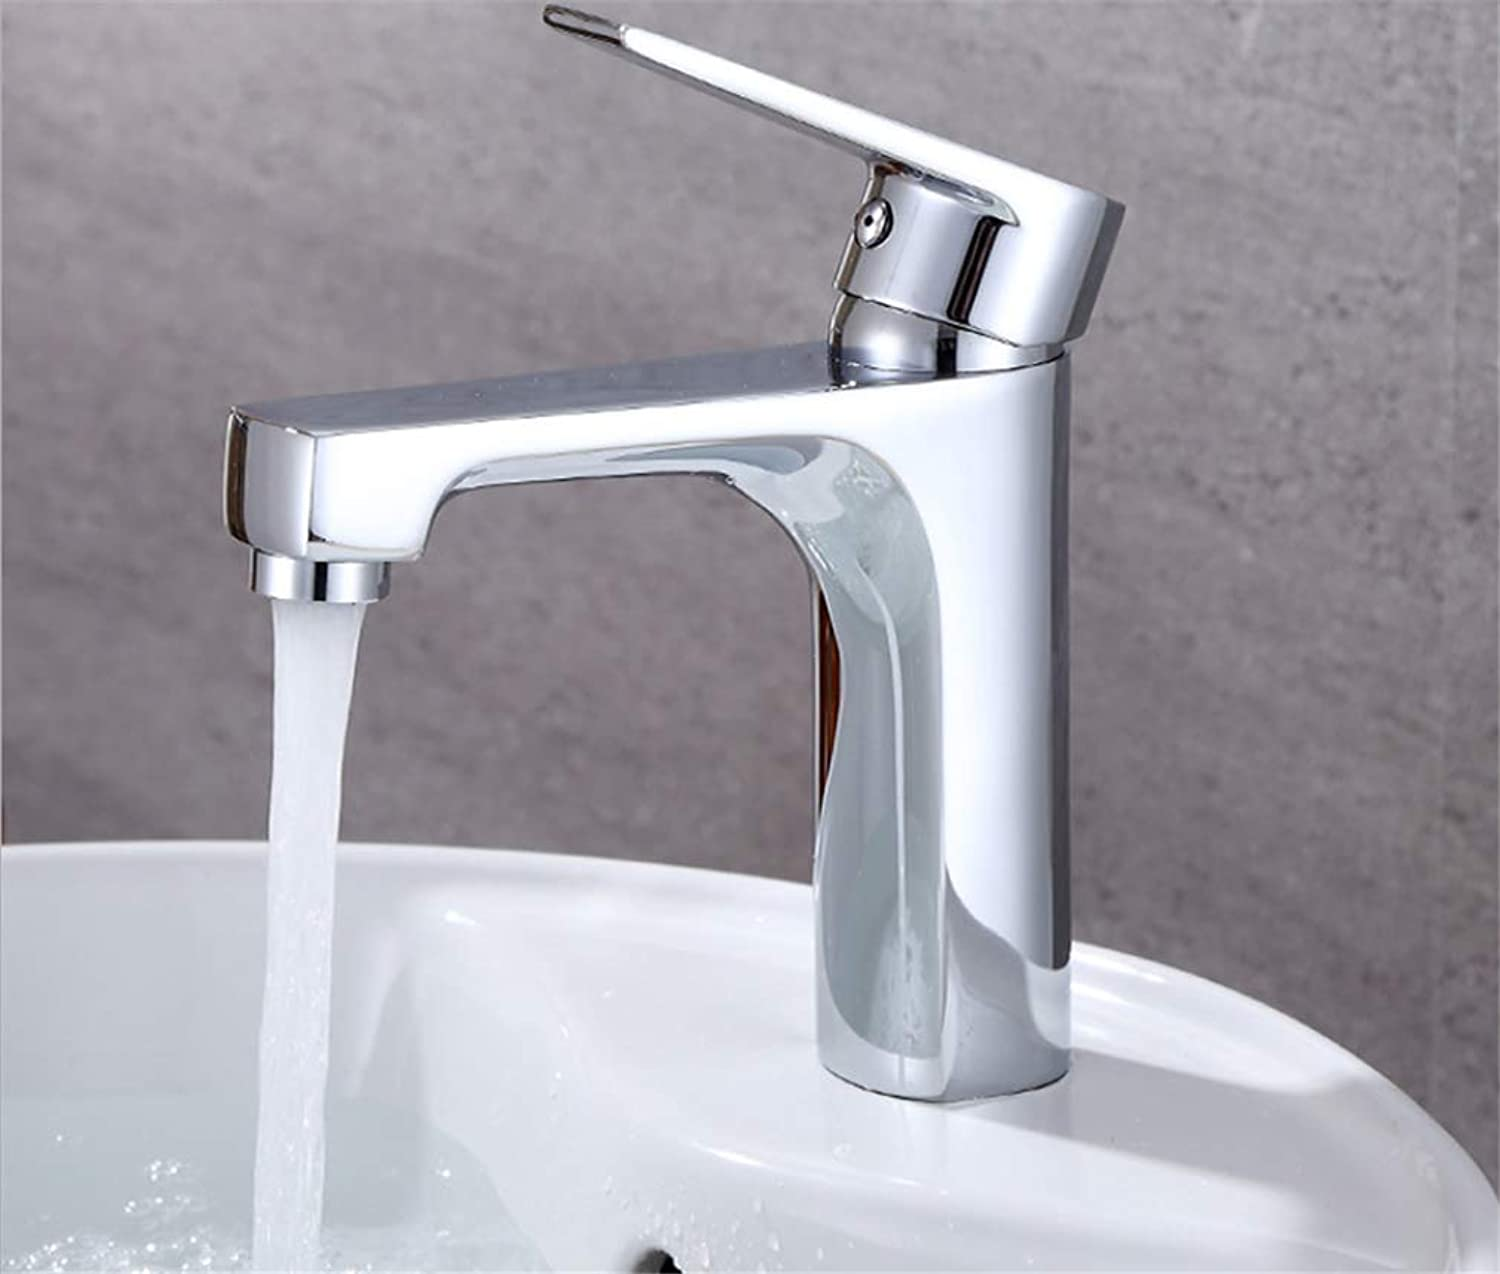 Basin Faucetcopper Bathtub Washbasin Hot and Cold Water Mixing Faucet Washbasin Basin Style Style Faucet